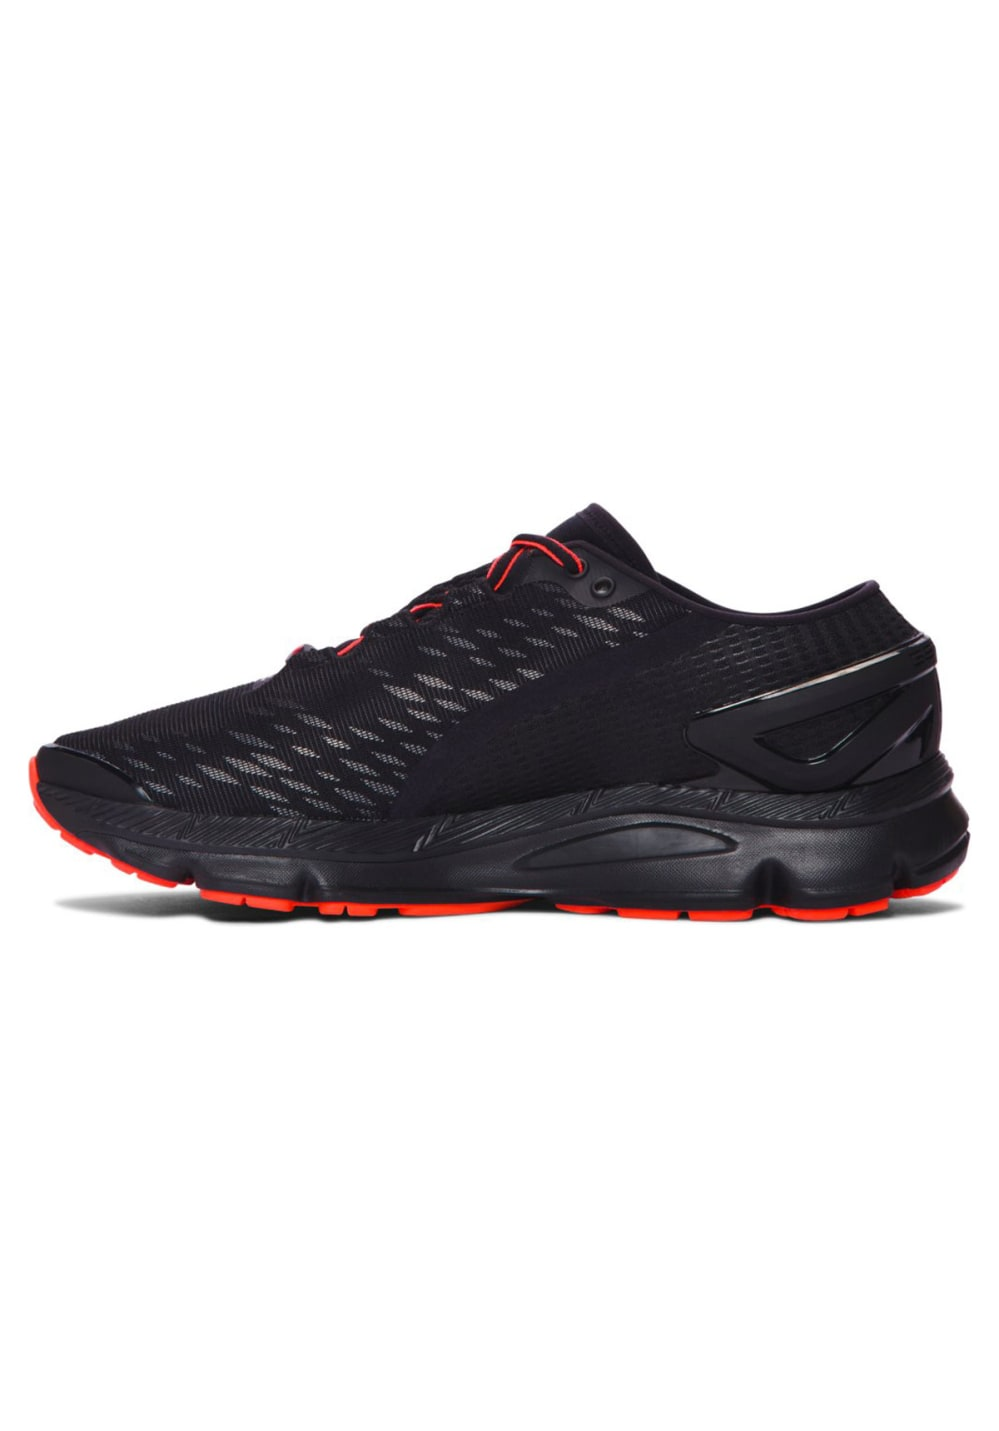 reputable site bee69 2d6d0 Under Armour Speedform Gemini 2 Night Re - Running shoes for Men - Black